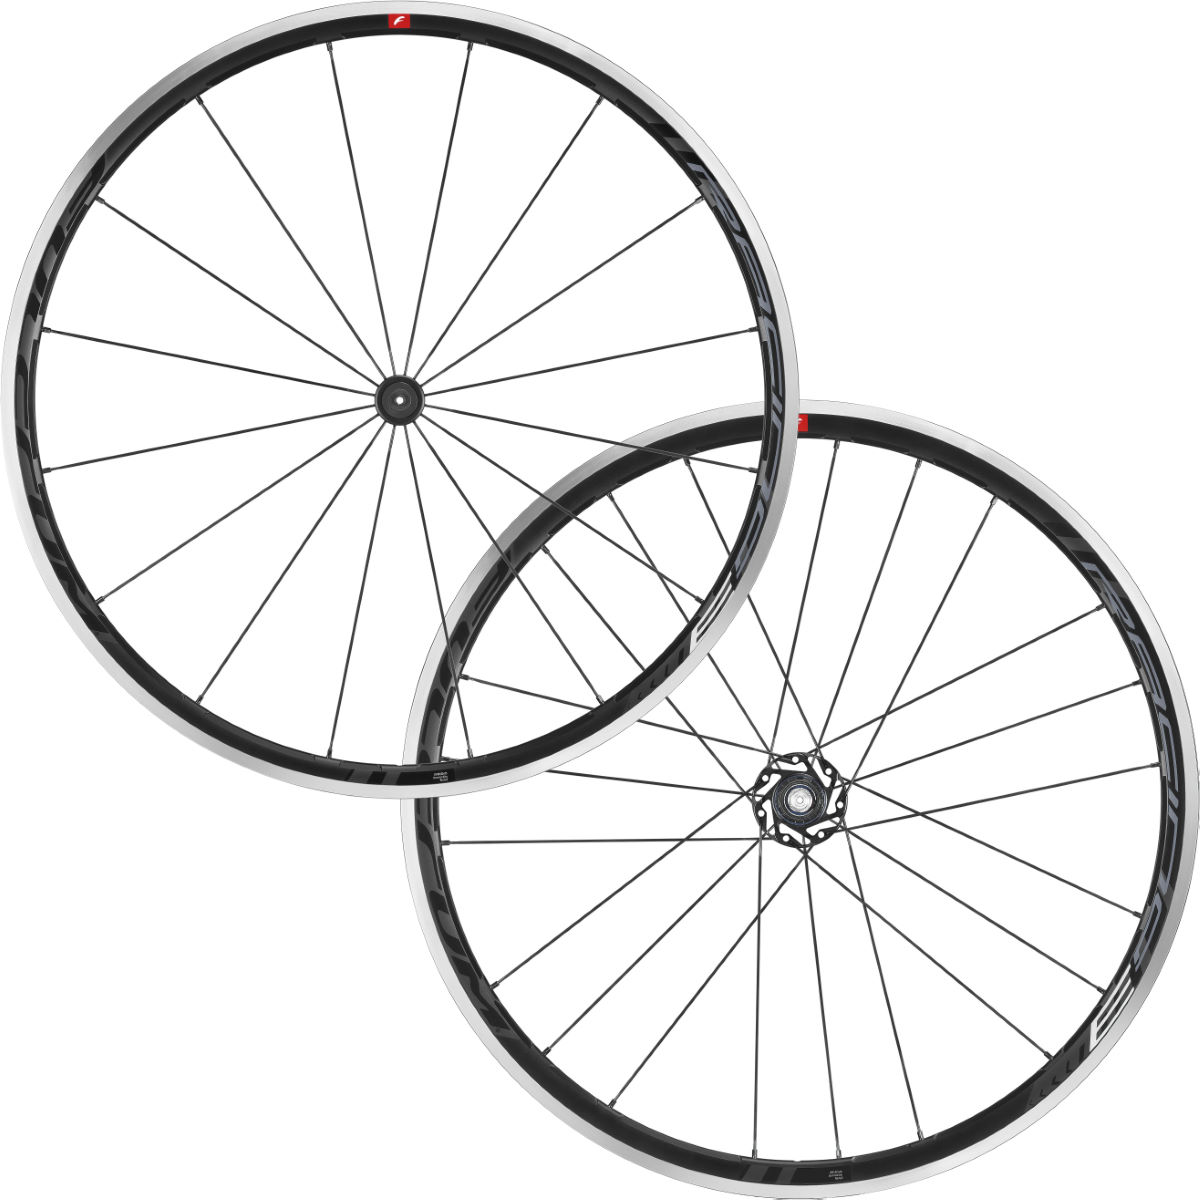 Fulcrum Racing 3 Wheelset - Ruedas de competición